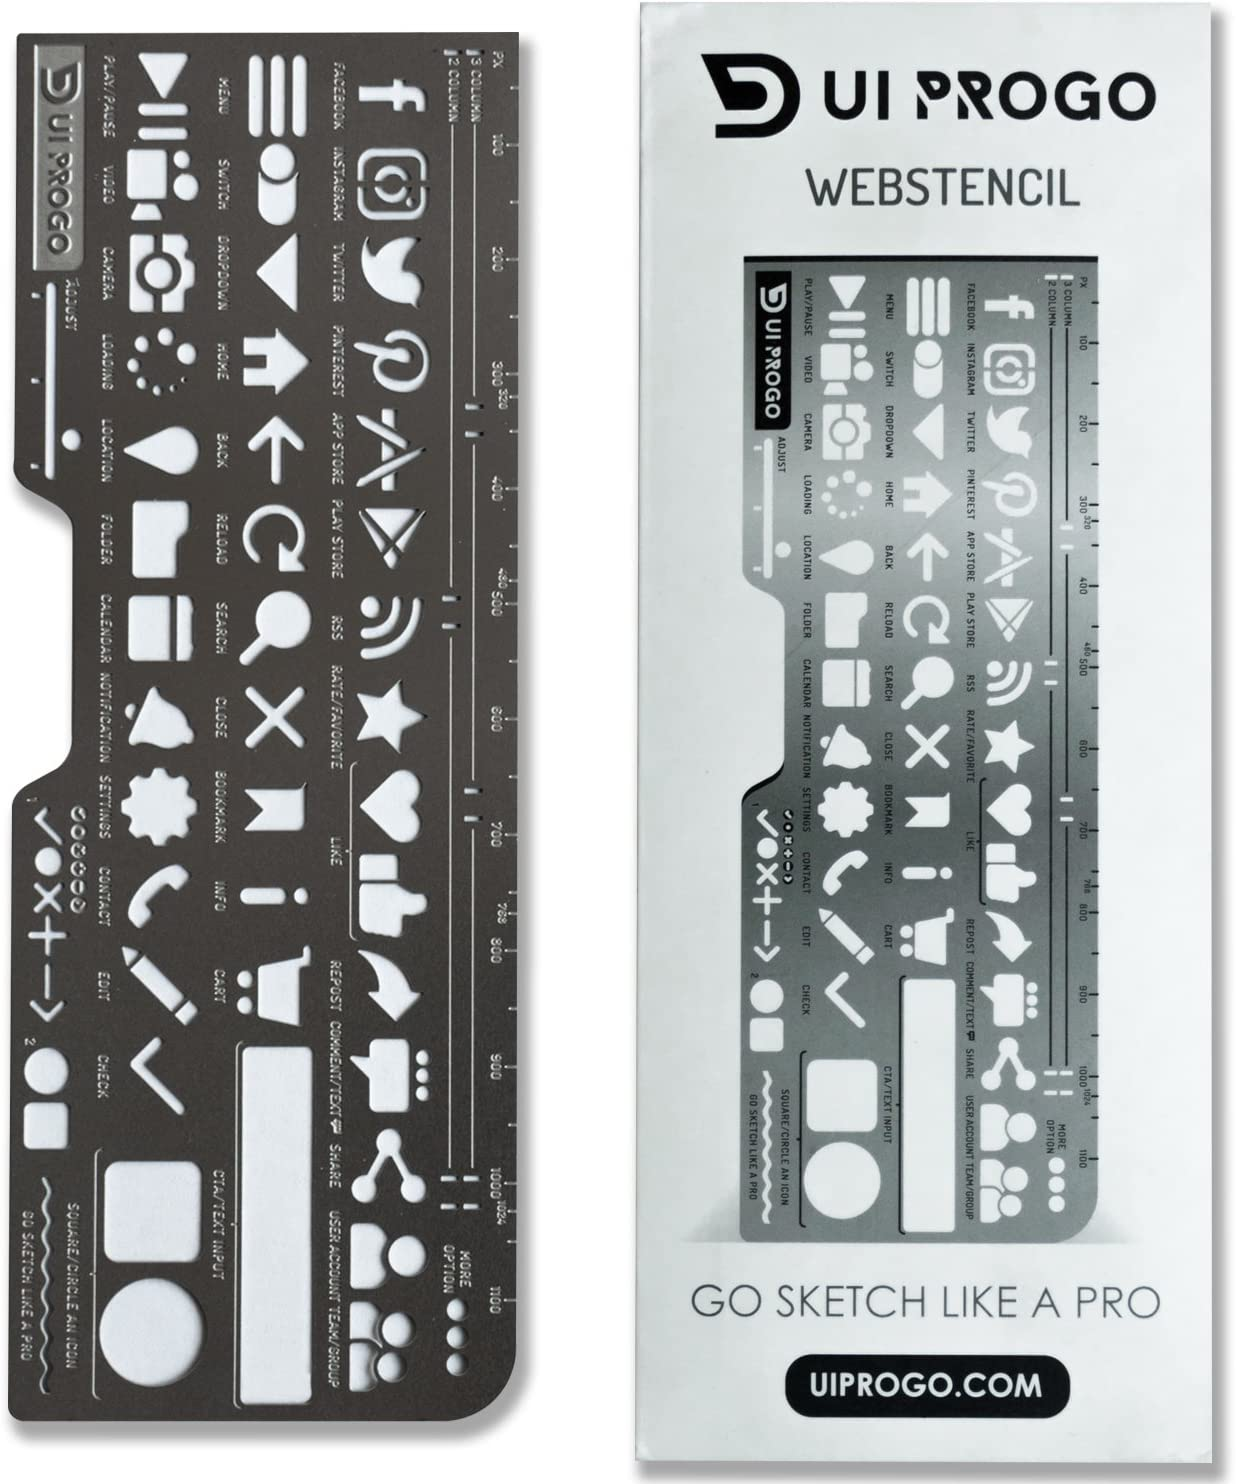 UI PROGO Stainless Steel Stencils for Portable Drawing - Perfect for UI UX Design Material - Large Icons for Easy Stenciling - Includes Social Media Icons – Webstencil